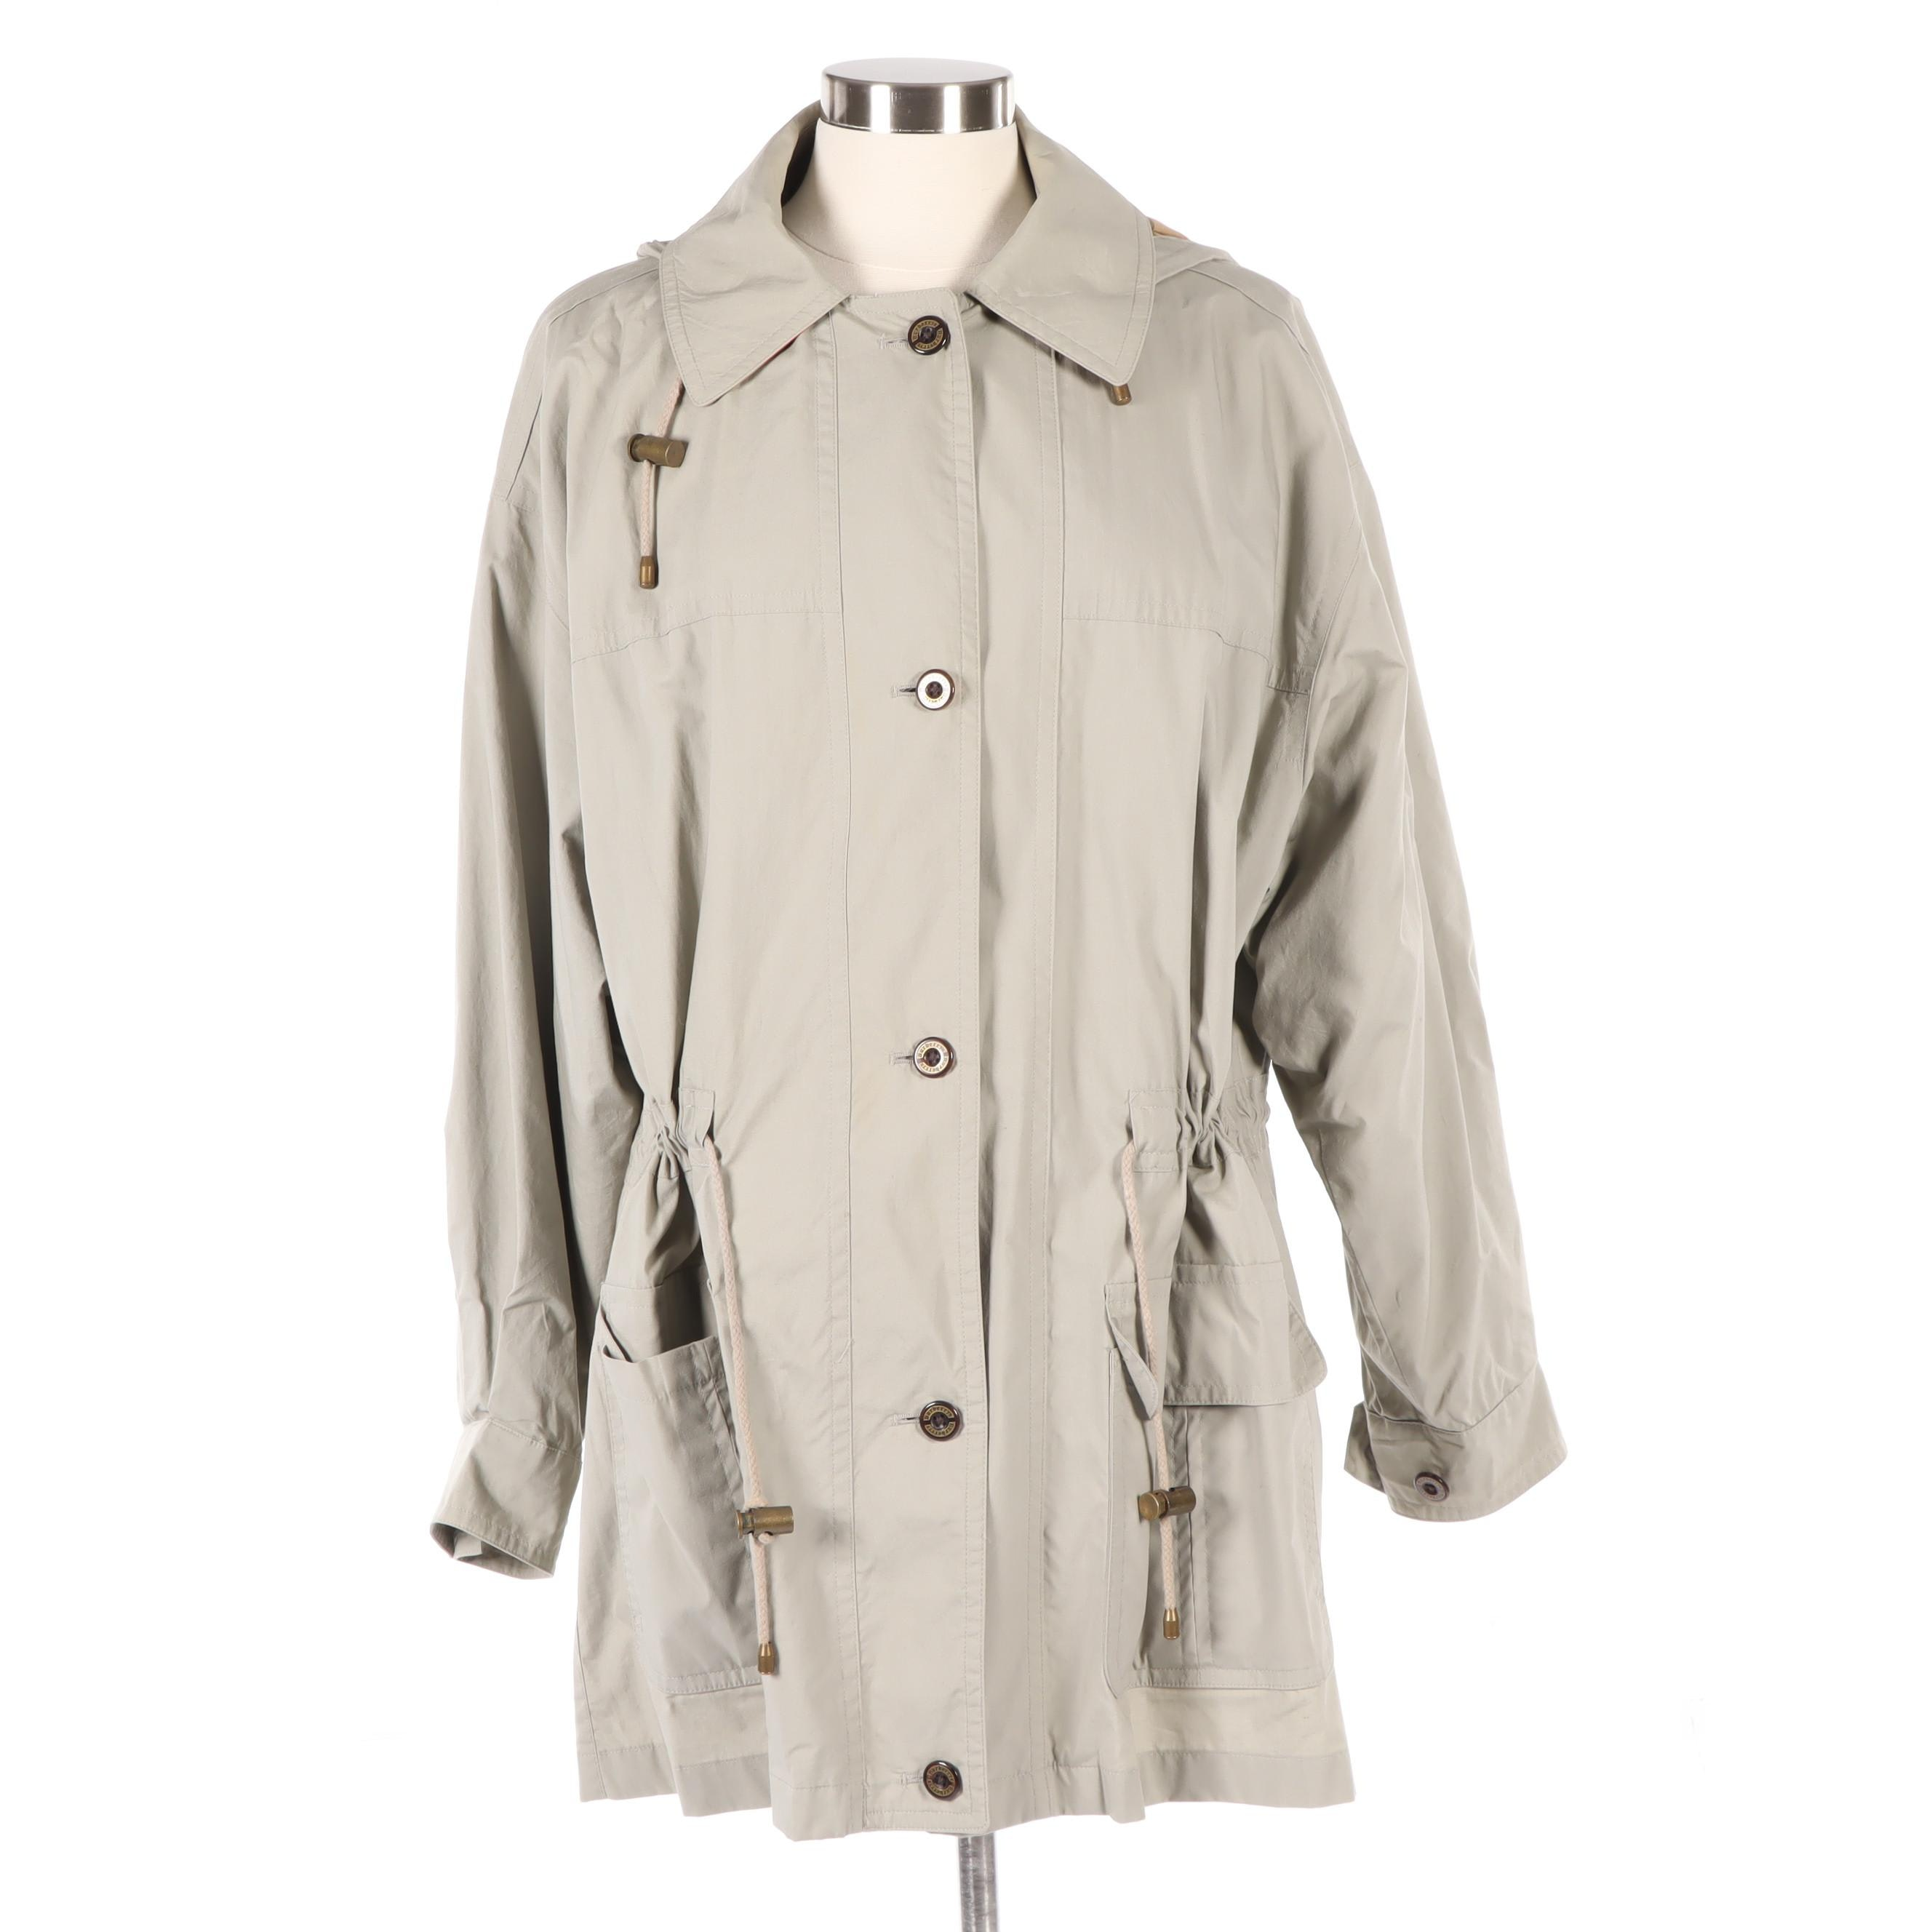 Women's Burberrys of London Jacket with Removable Hood